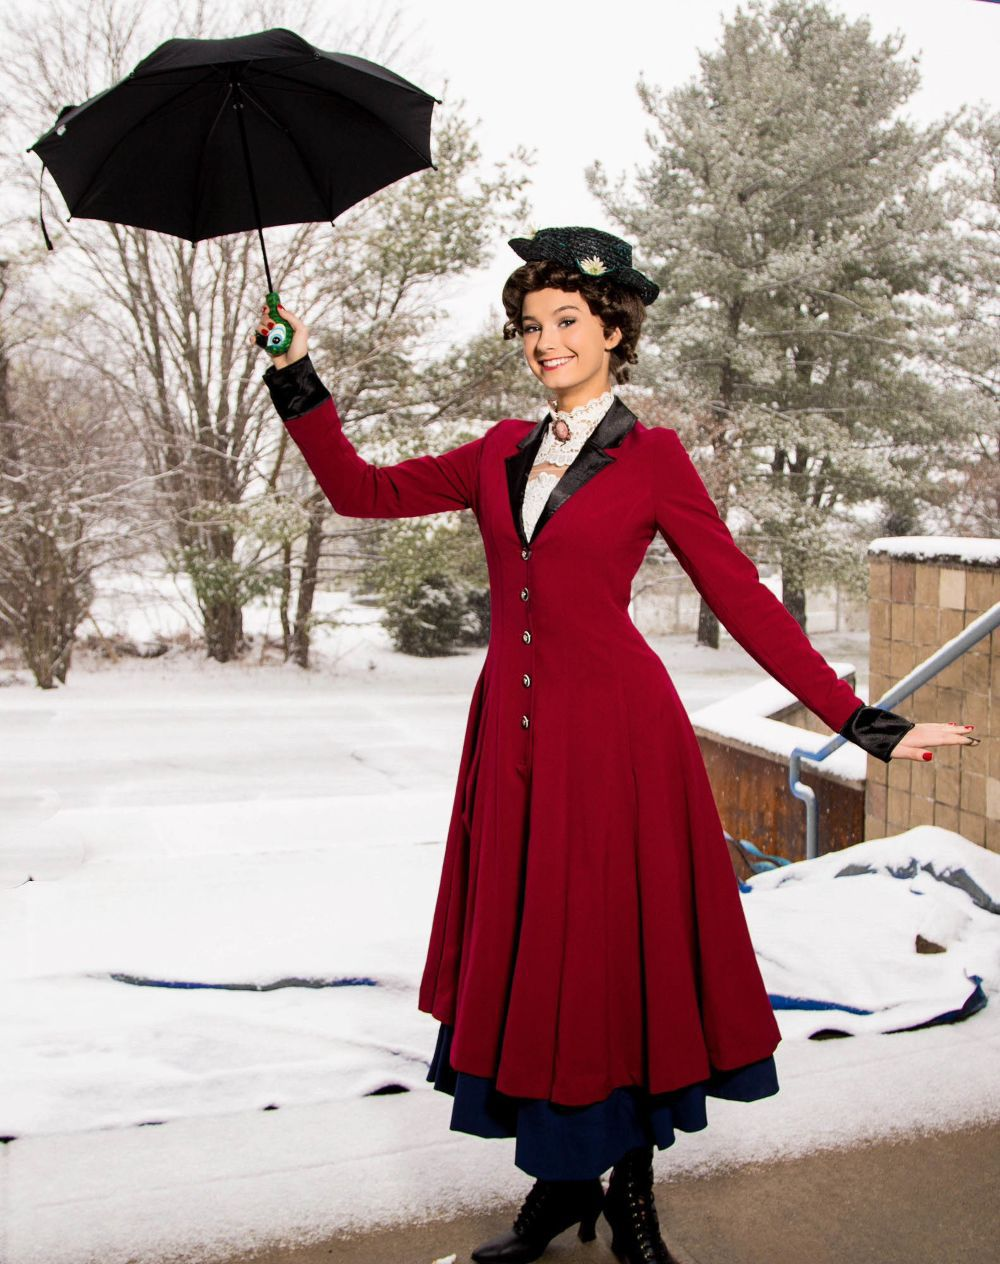 ShowKids Invitational Theatre presents 'Mary Poppins' from Saturday, Jan. 20, at Voorhees High